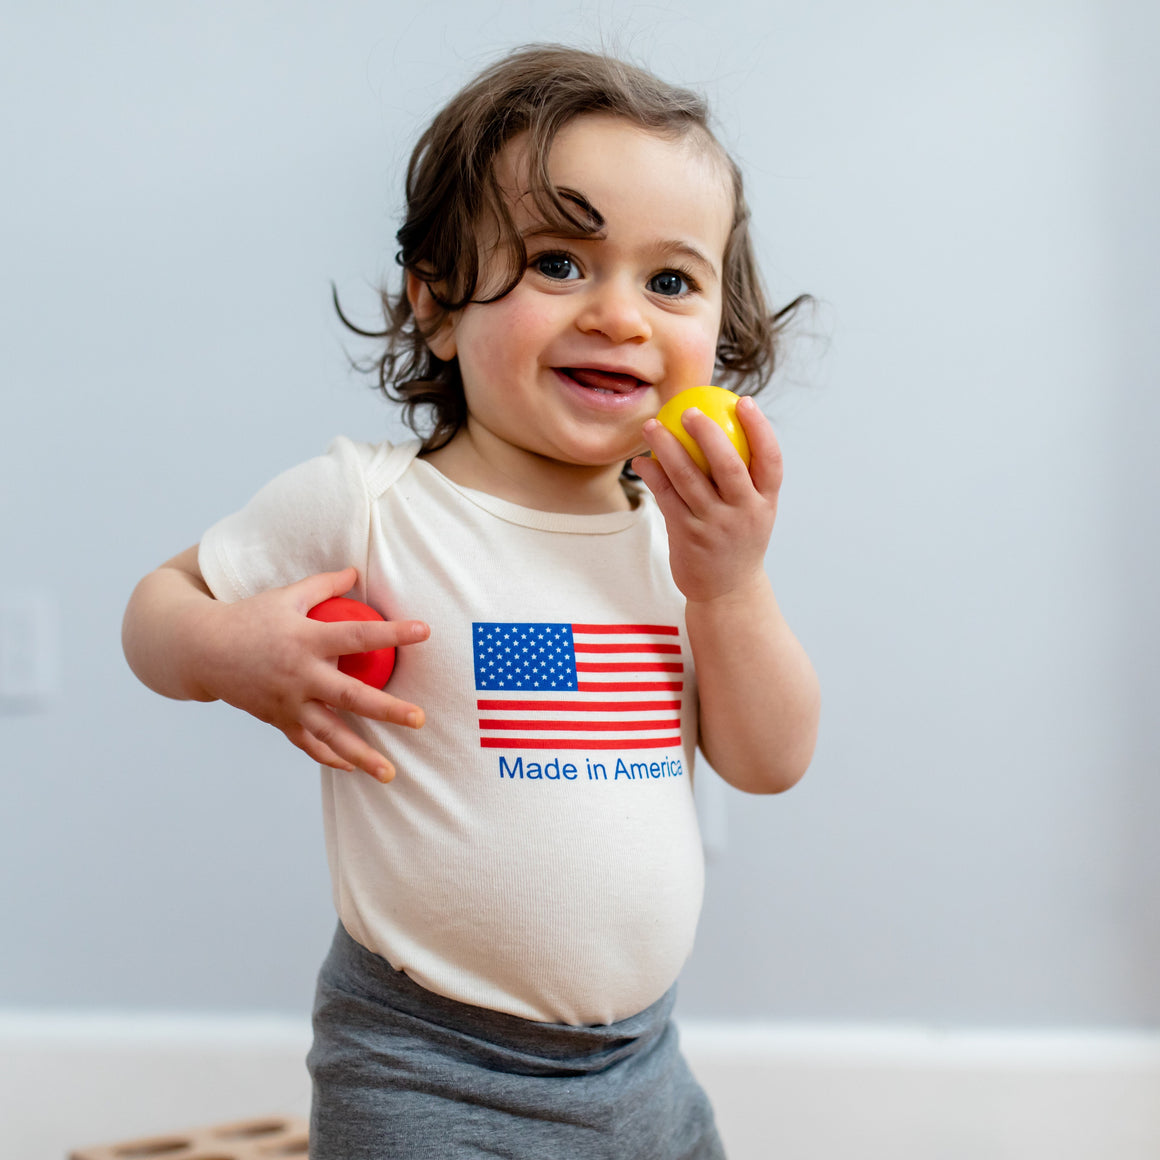 Organic Cotton Baby Onesie - Made in America